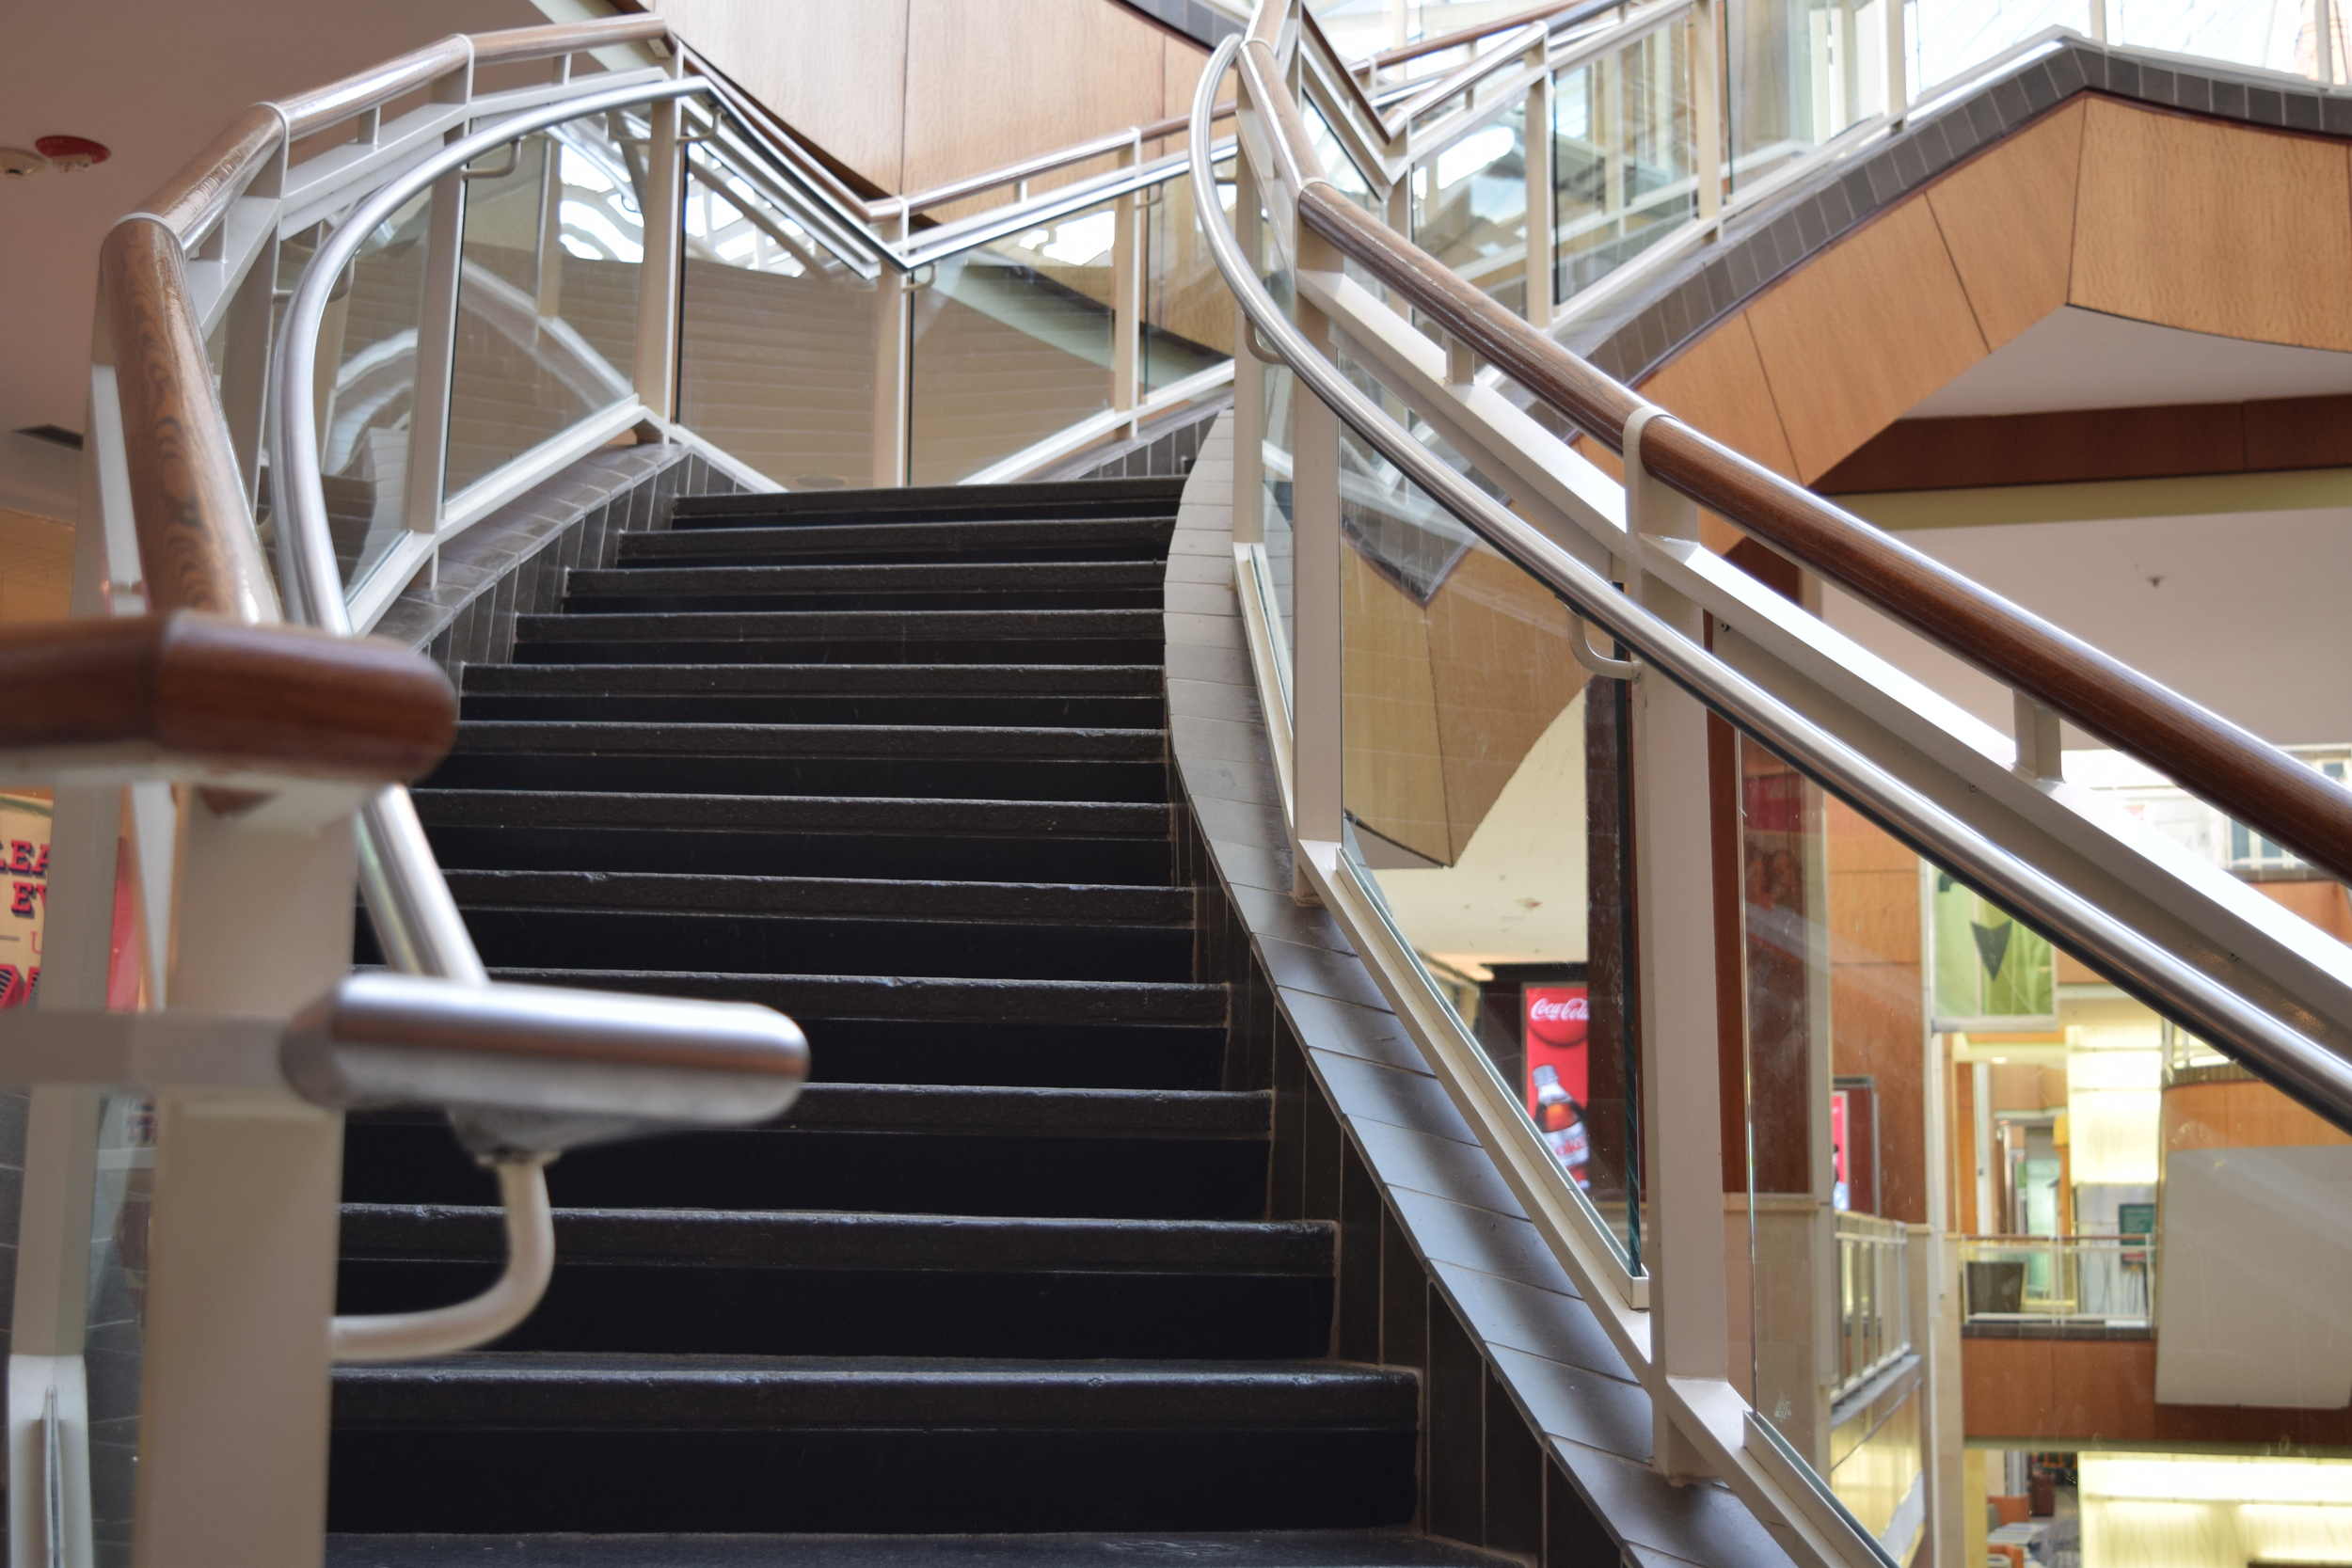 PARK PLAZA MALL  Little Rock, AR  Segmented stainless steel guardrail with wood and glass